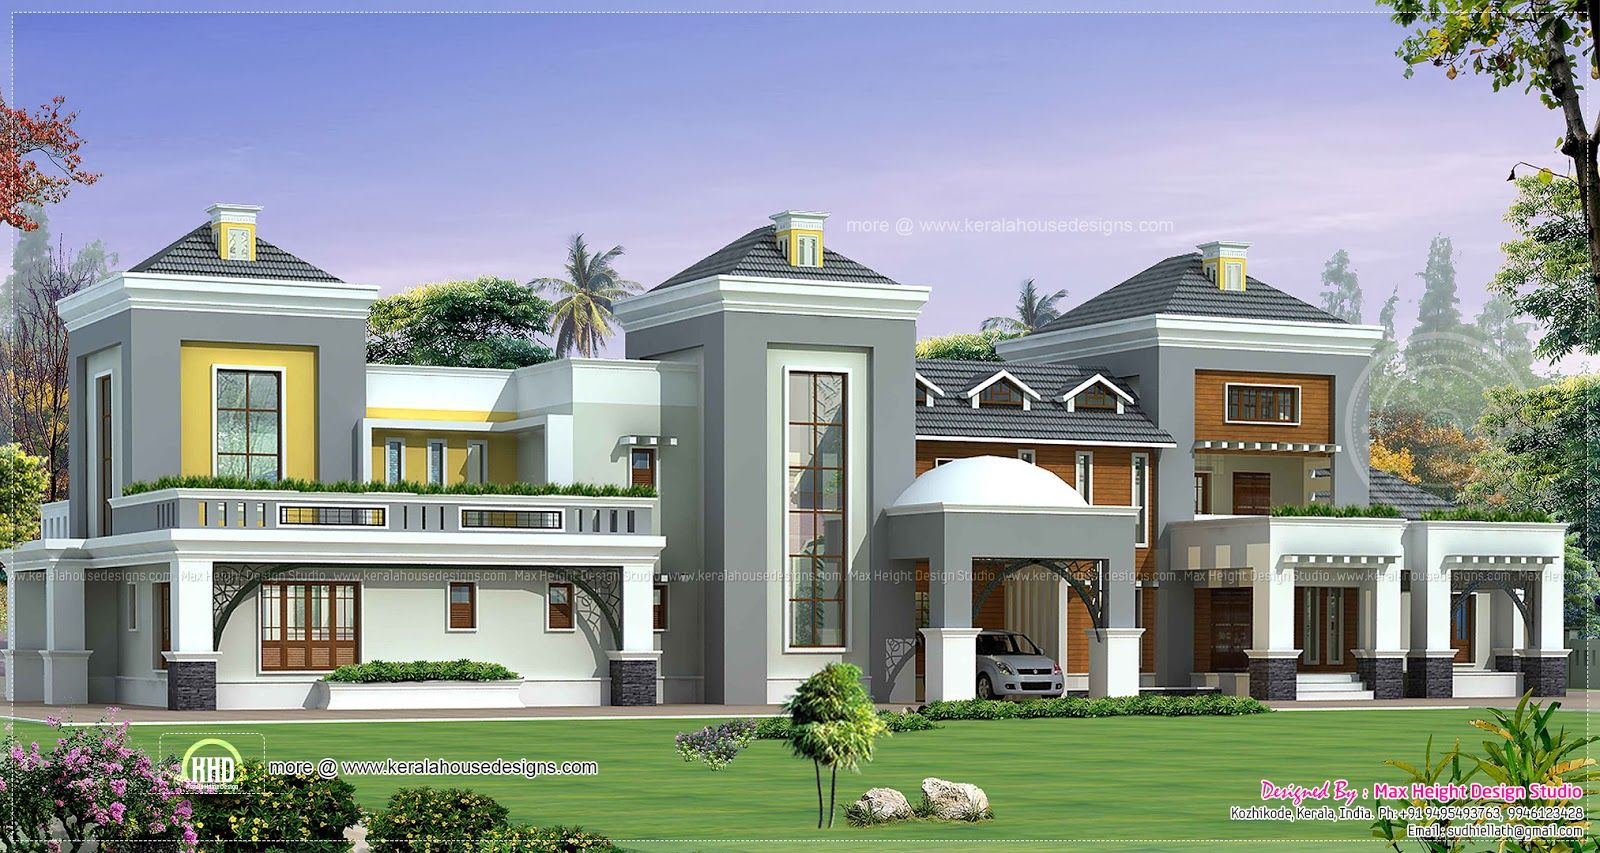 Luxury house plan with photo kerala home design and for Luxury house plans online